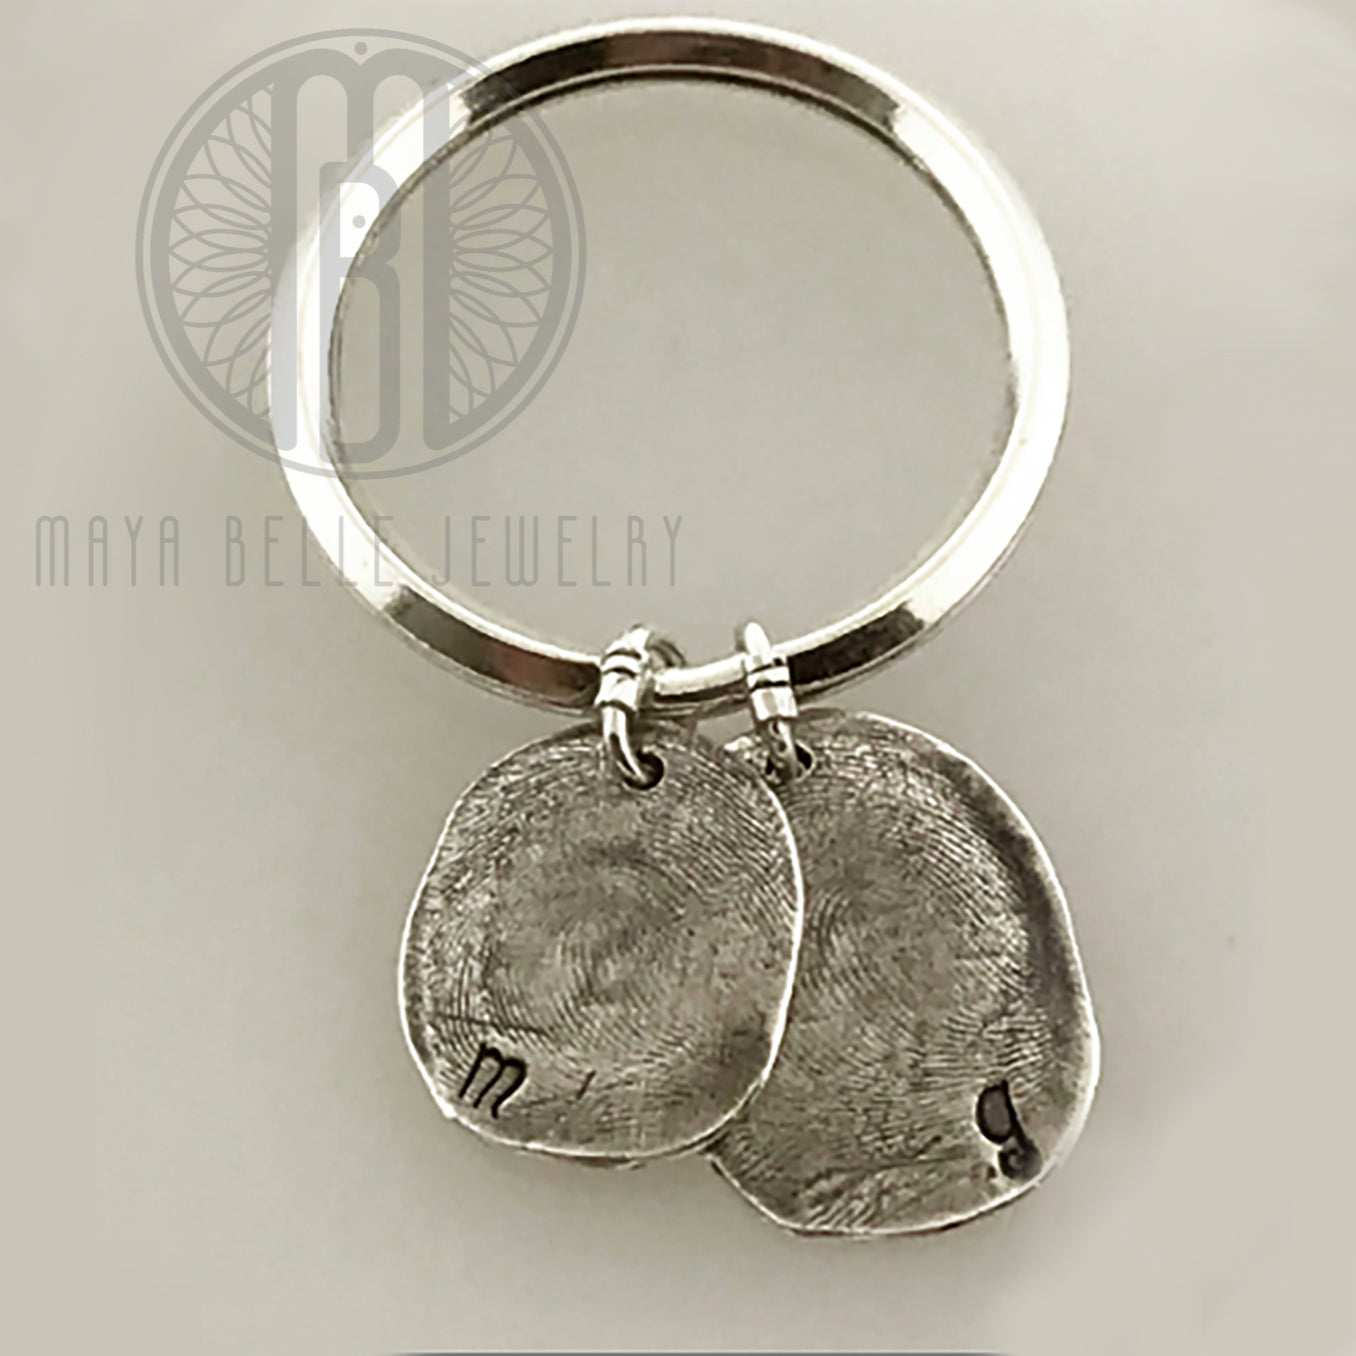 Two Molded Fingerprints Keychain with Choice of Initials - Maya Belle Jewelry